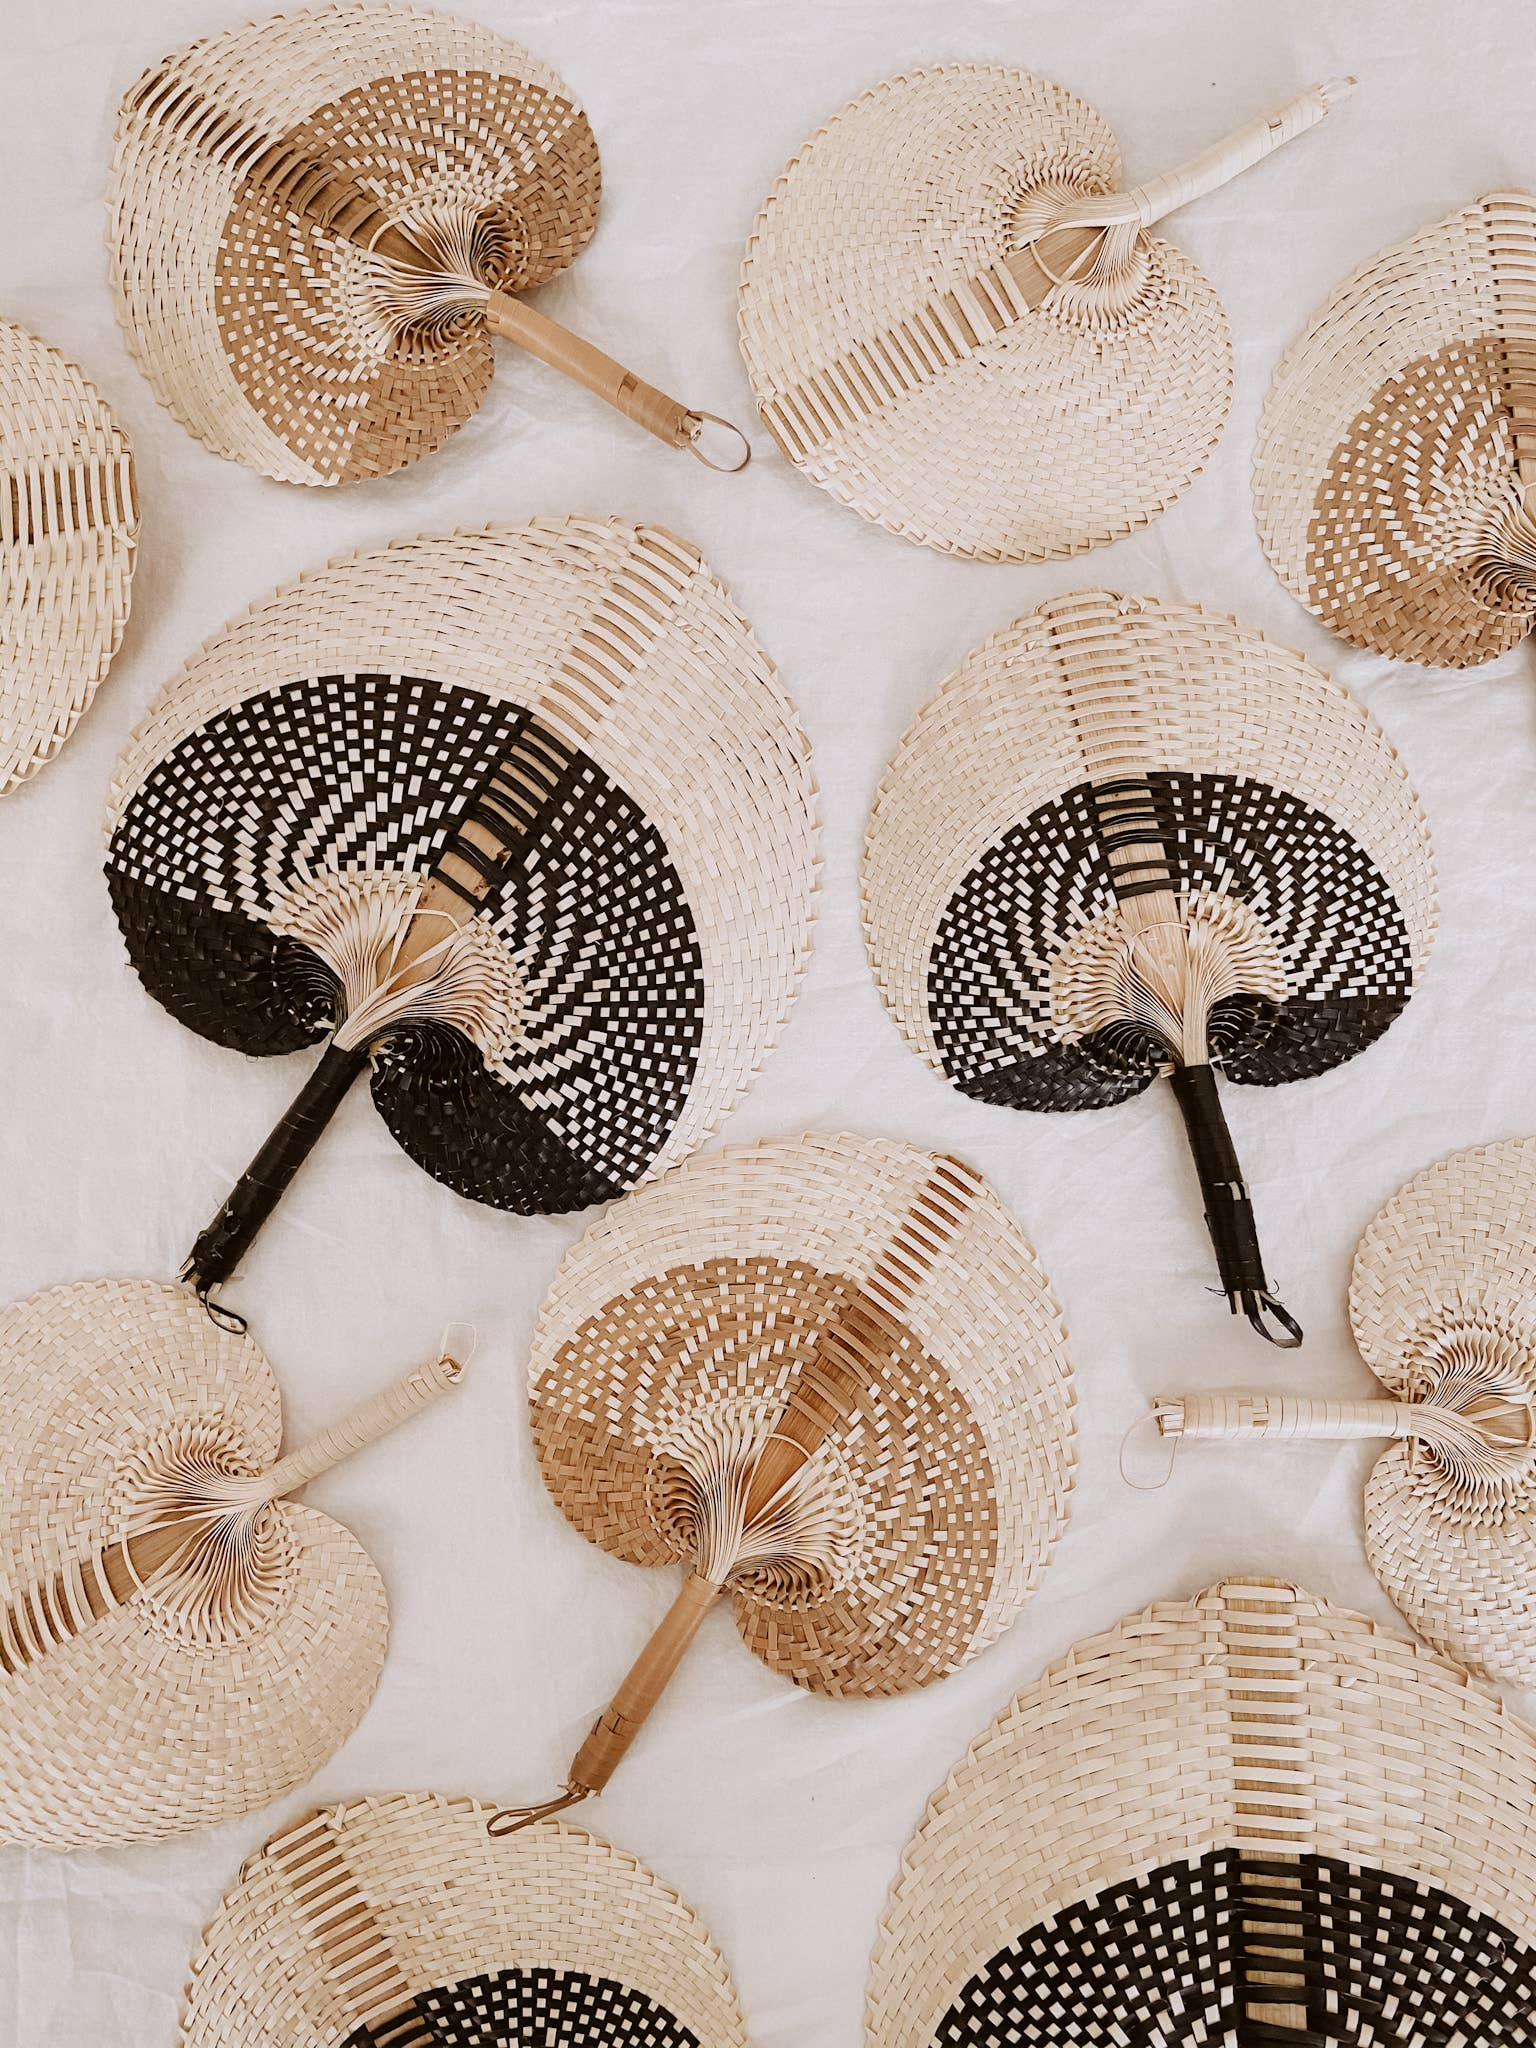 The Paradisio Woven Hand Fan by Village Thrive